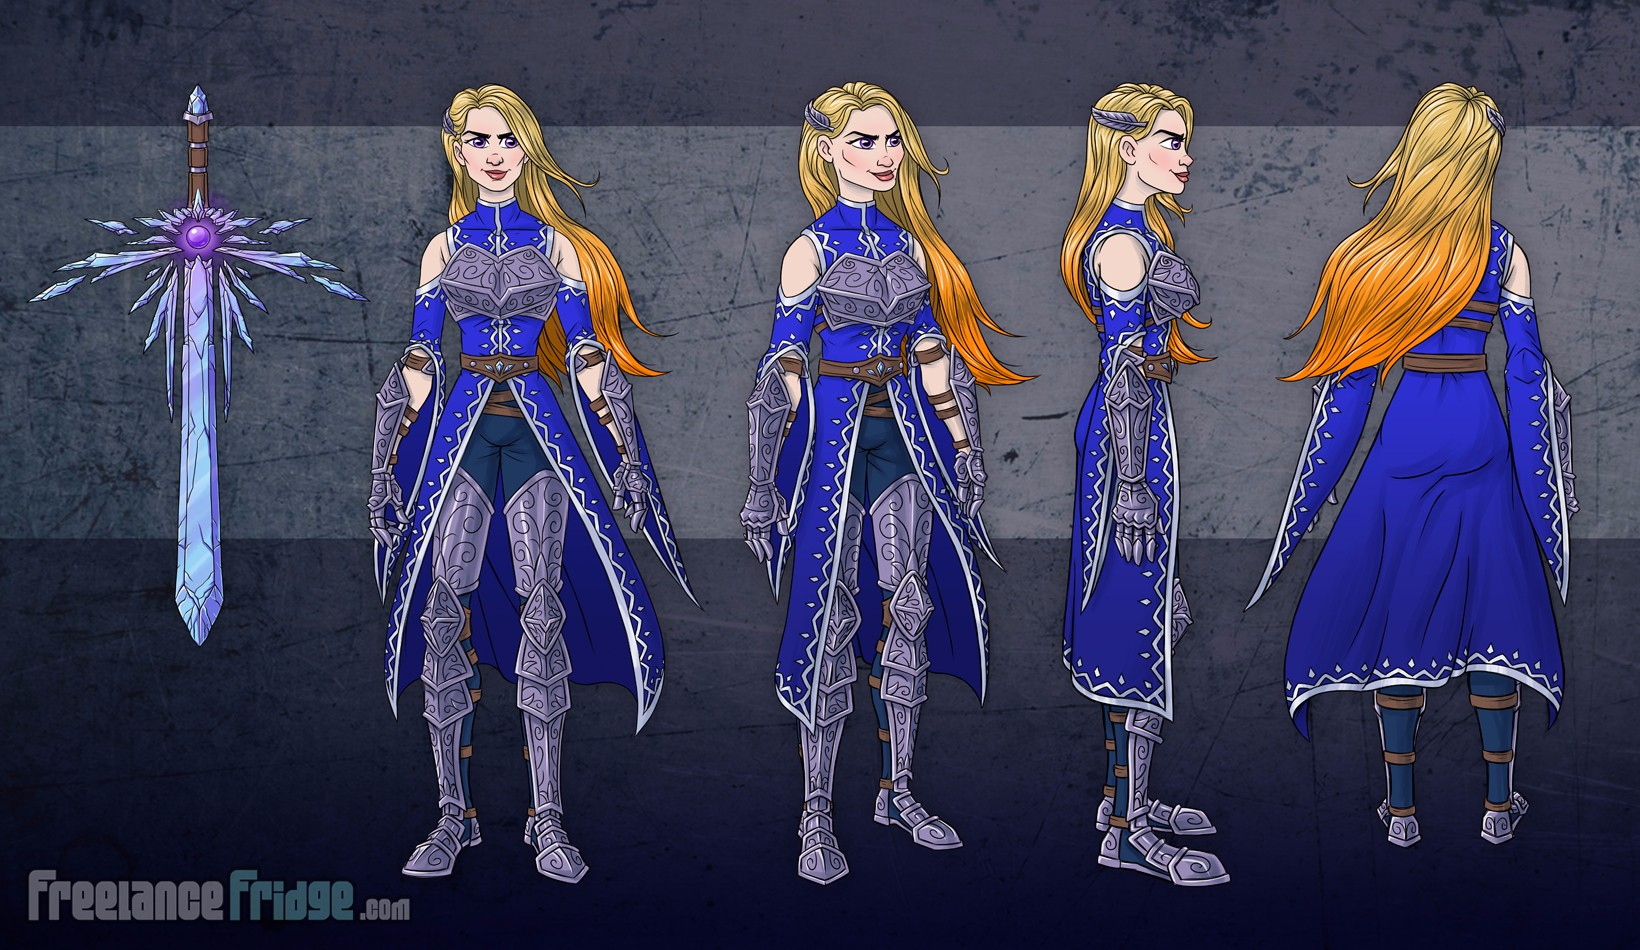 Female Warrior Knight Woman Girl wearing armor cloak color character concept artwork turnaround views for video game